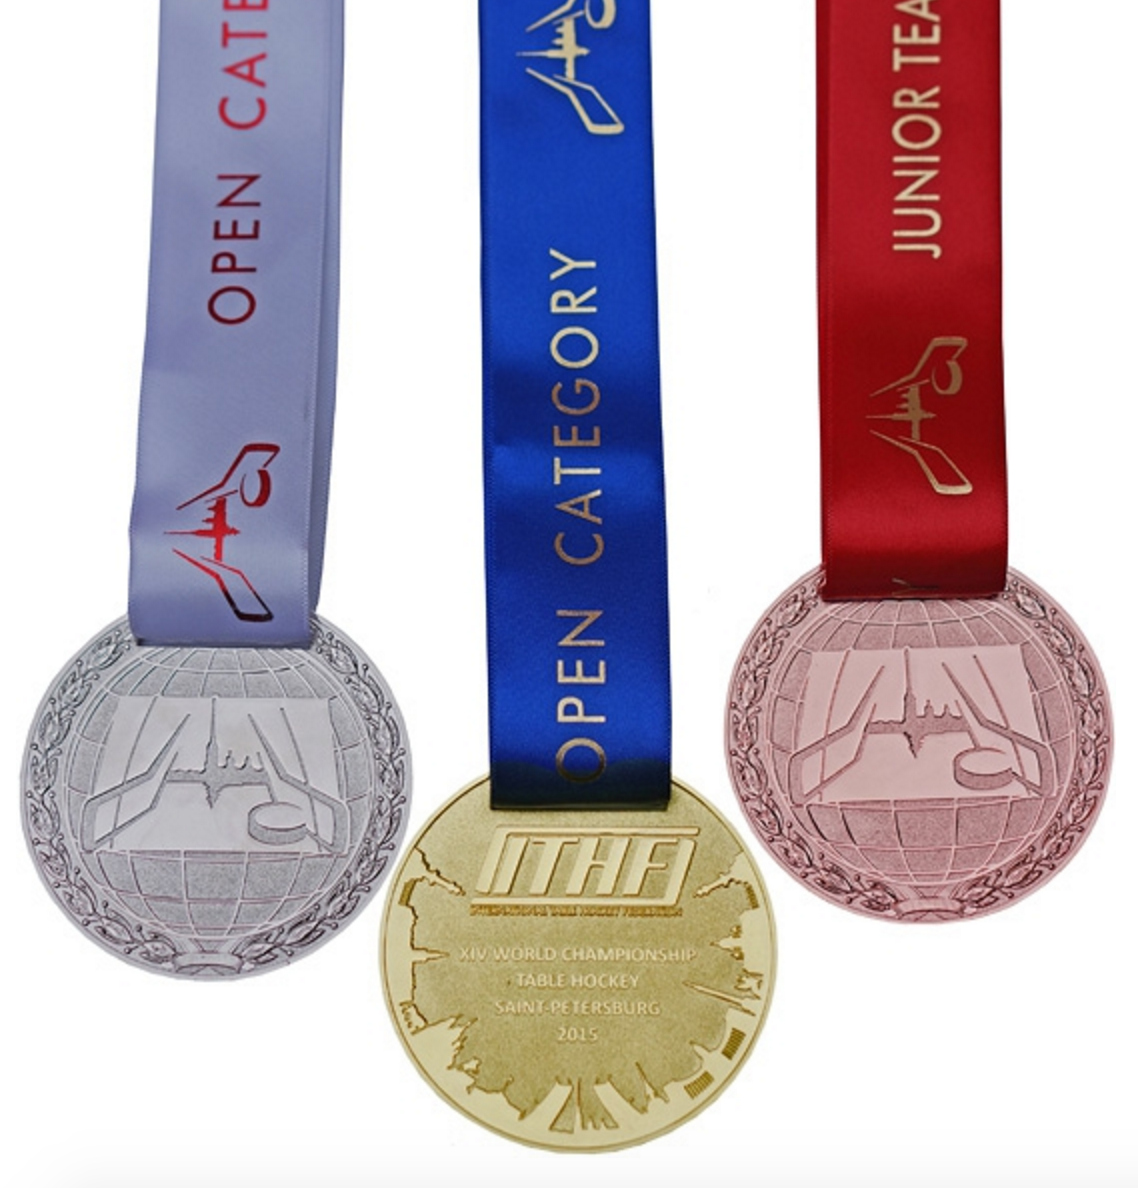 Table Hockey World Championship Medals 2015 | HockeyGods